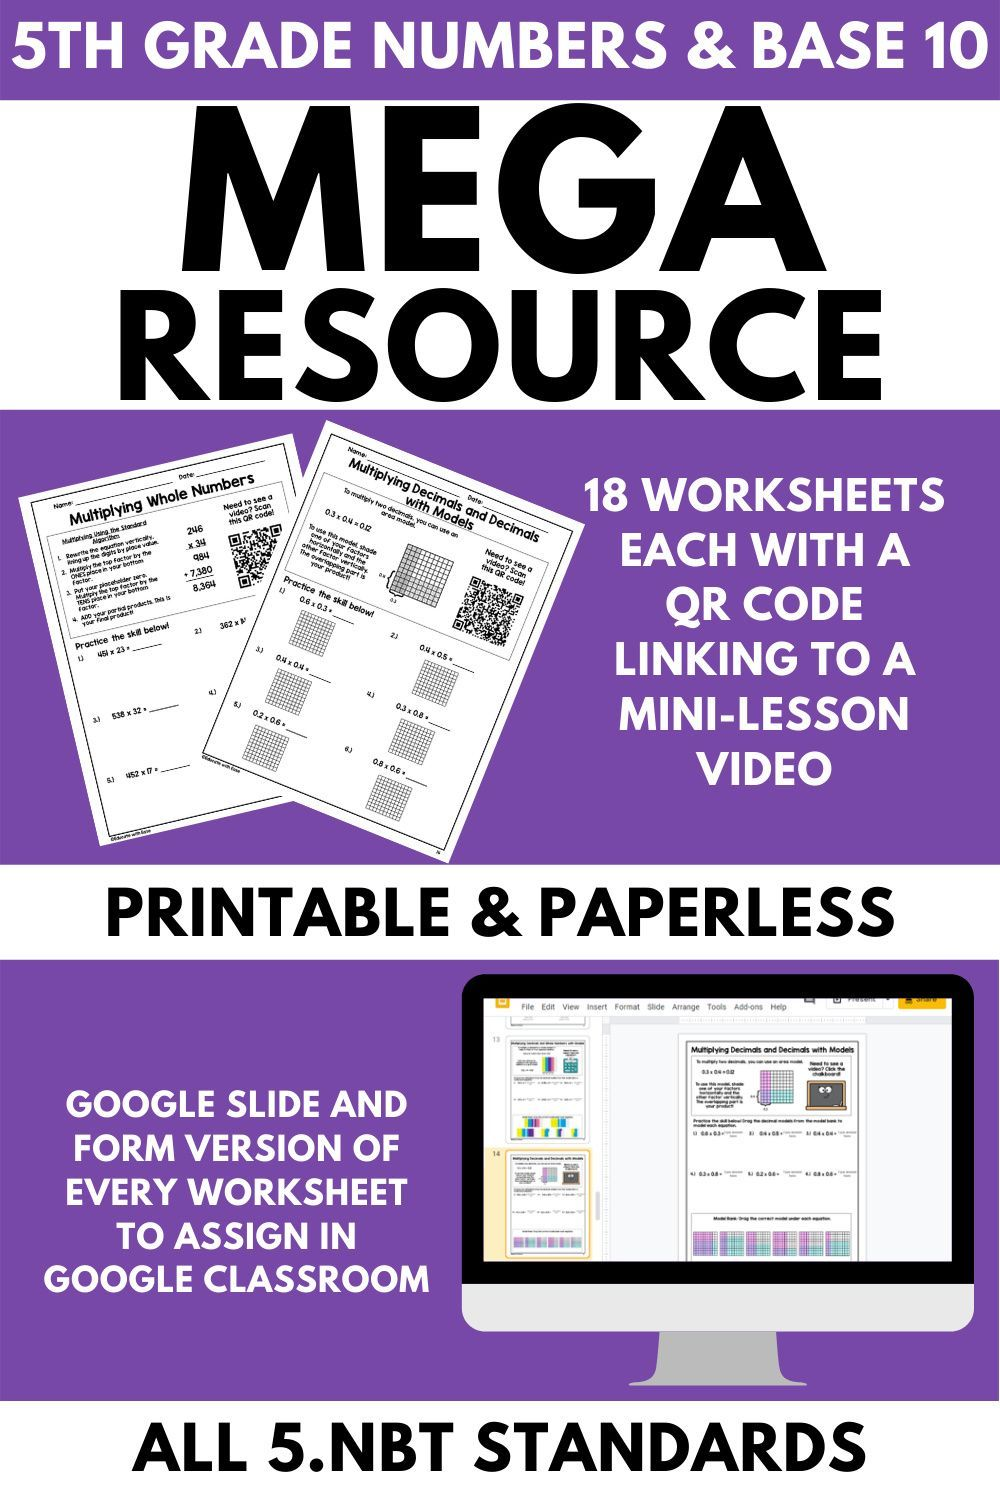 small resolution of 5th Grade Numbers and Base 10 MEGA Resource   Google classroom resources